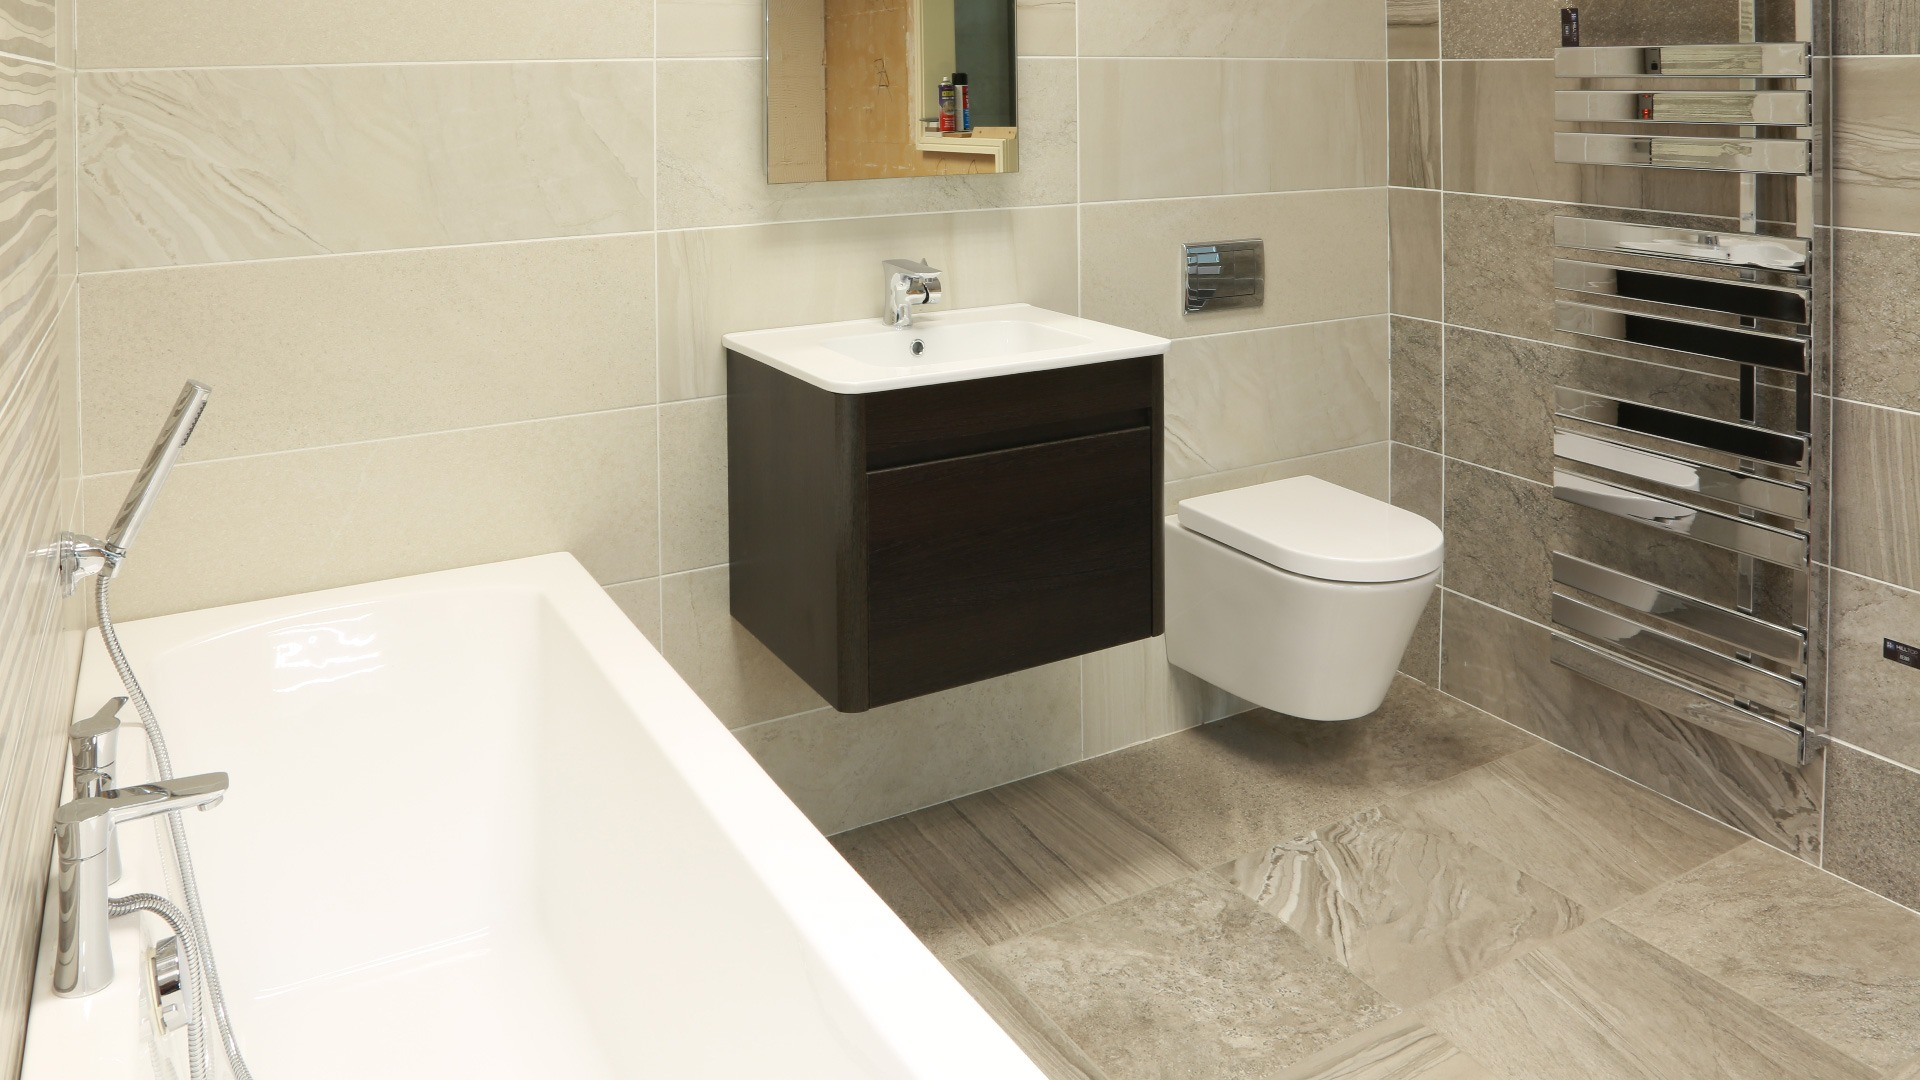 Elegant Karina39s House Project Bathroom Tile Selection